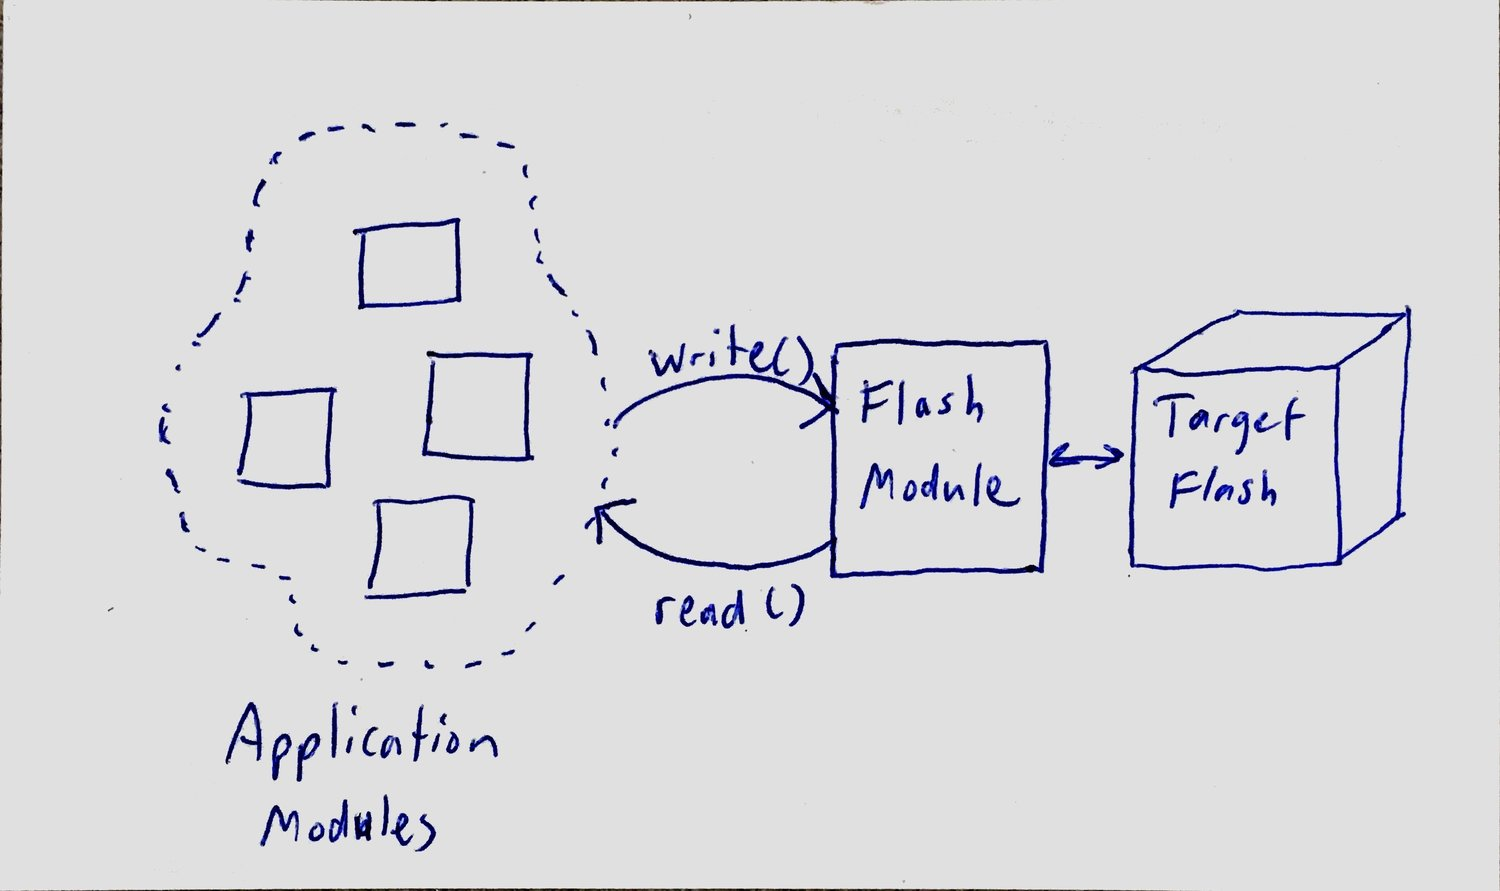 Unit testing with flash (EEPROM) — ElectronVector - Test